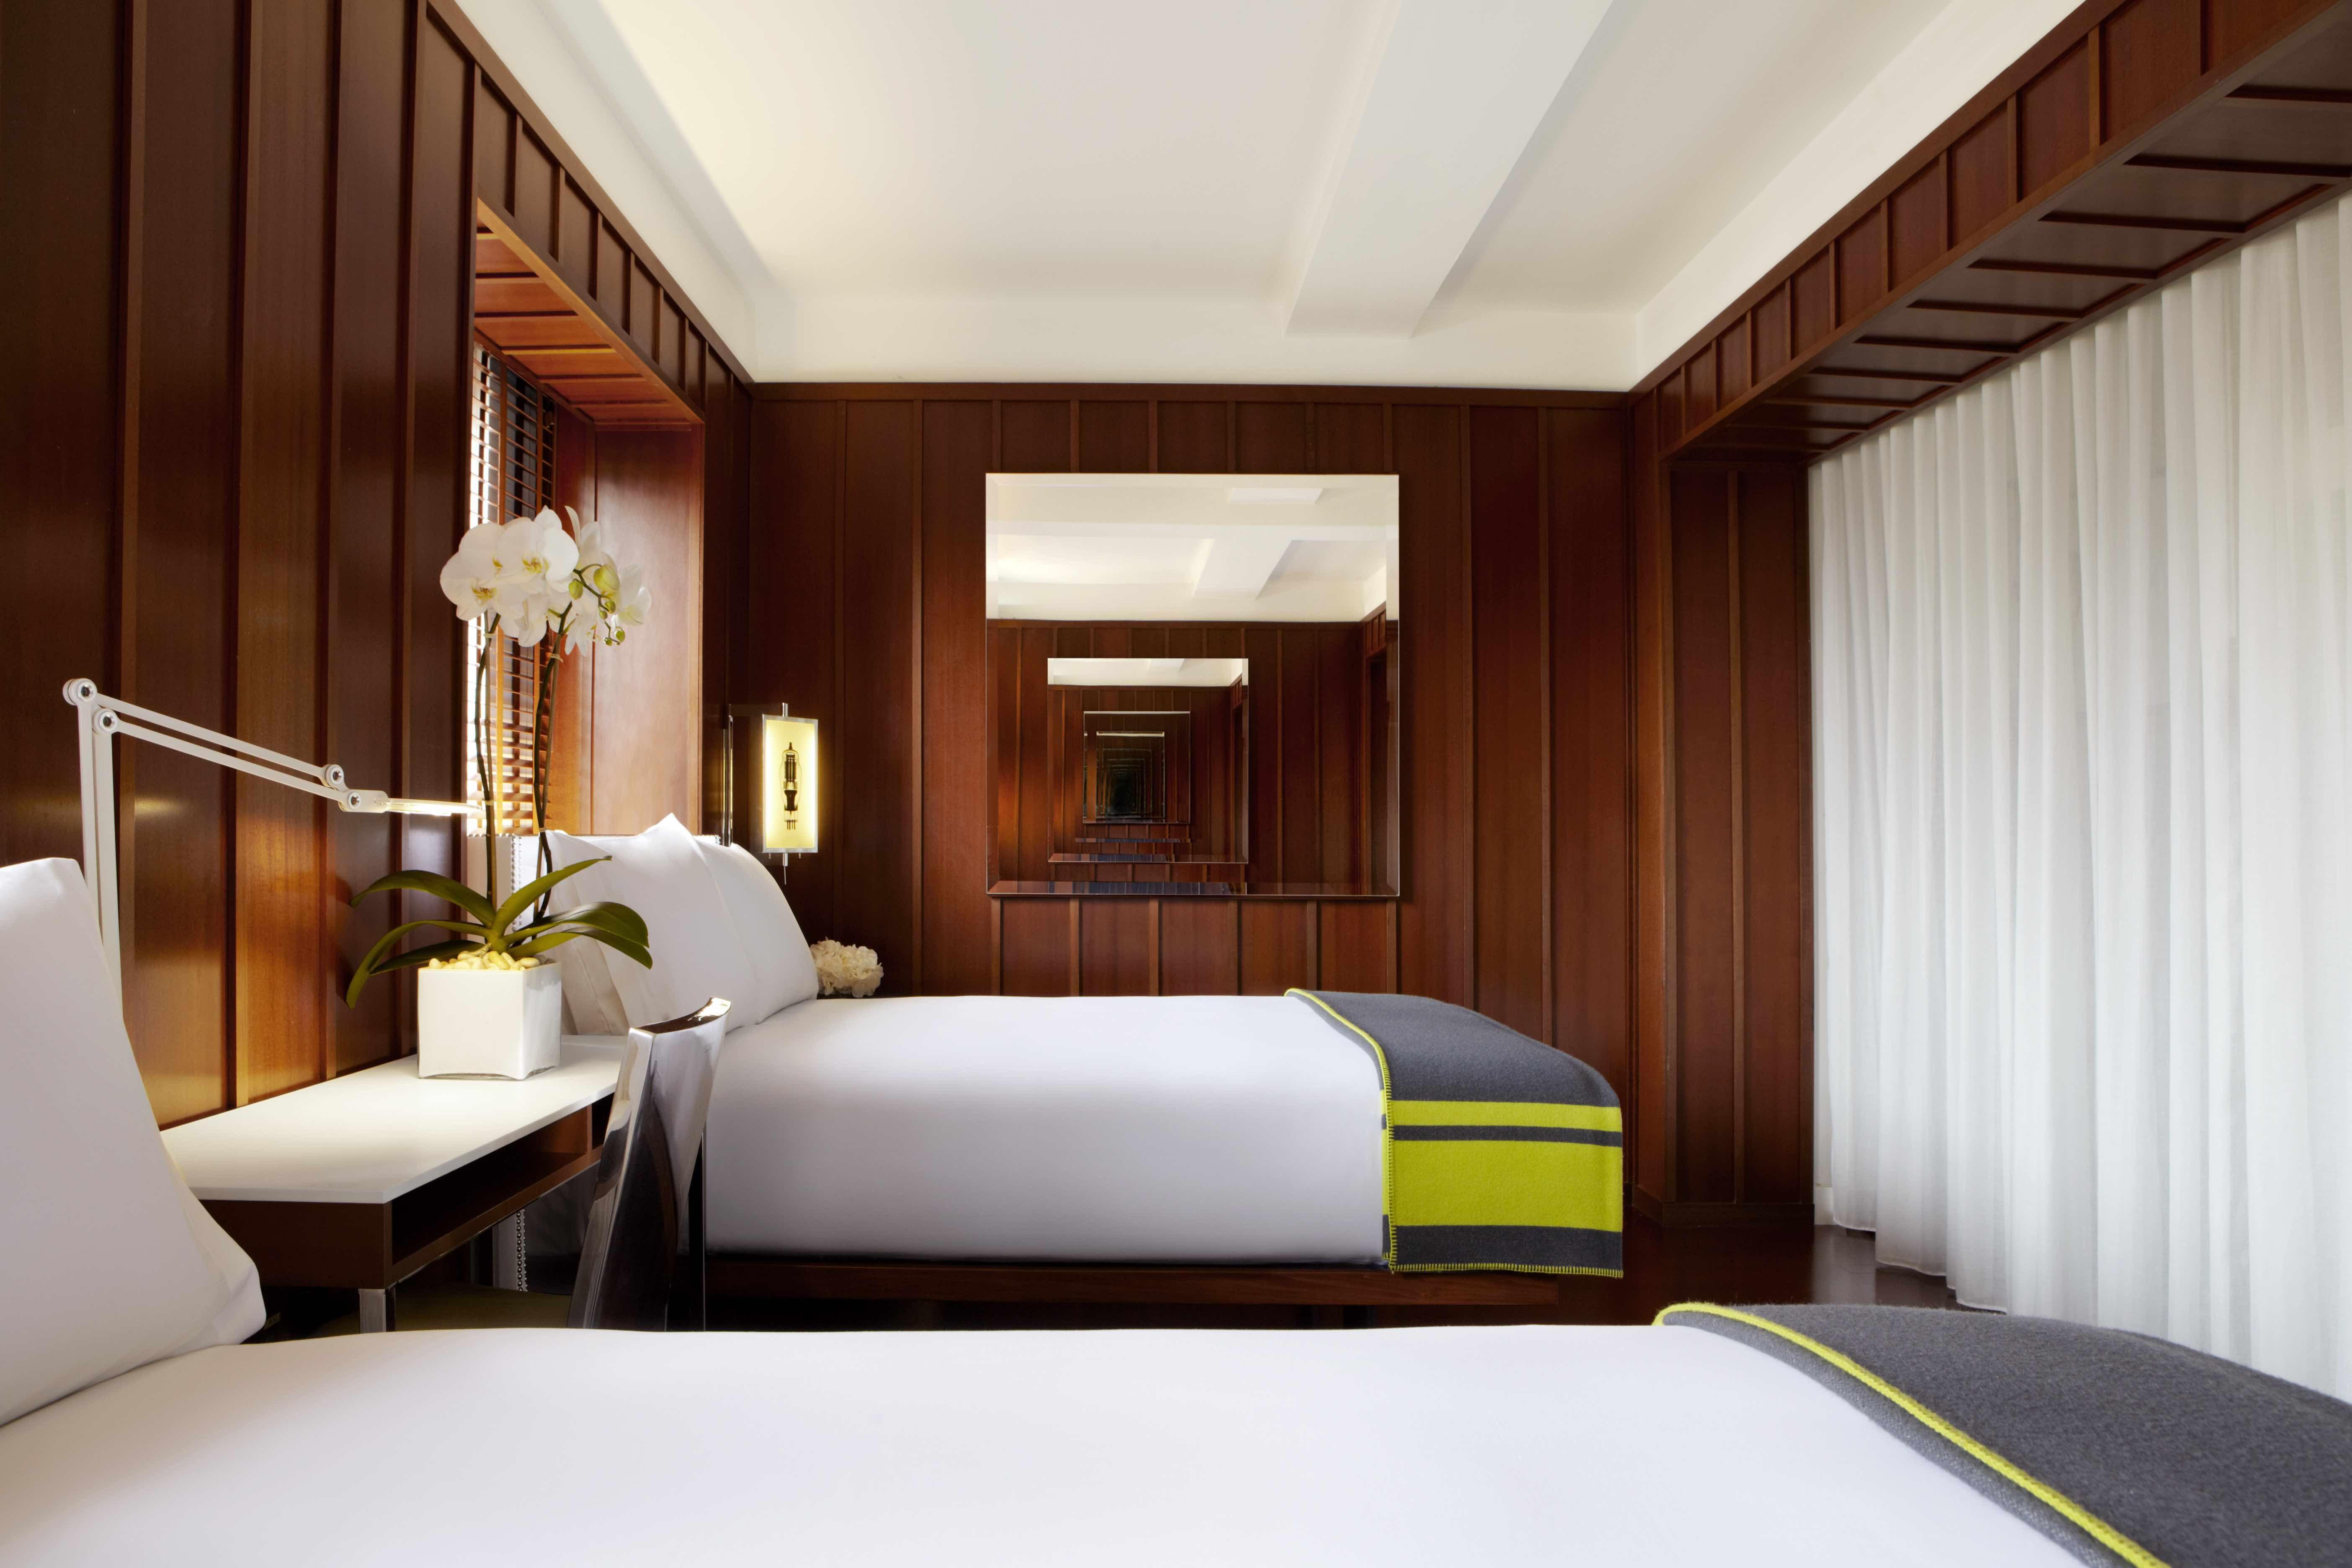 hotel room with two double beds and dark wood walls